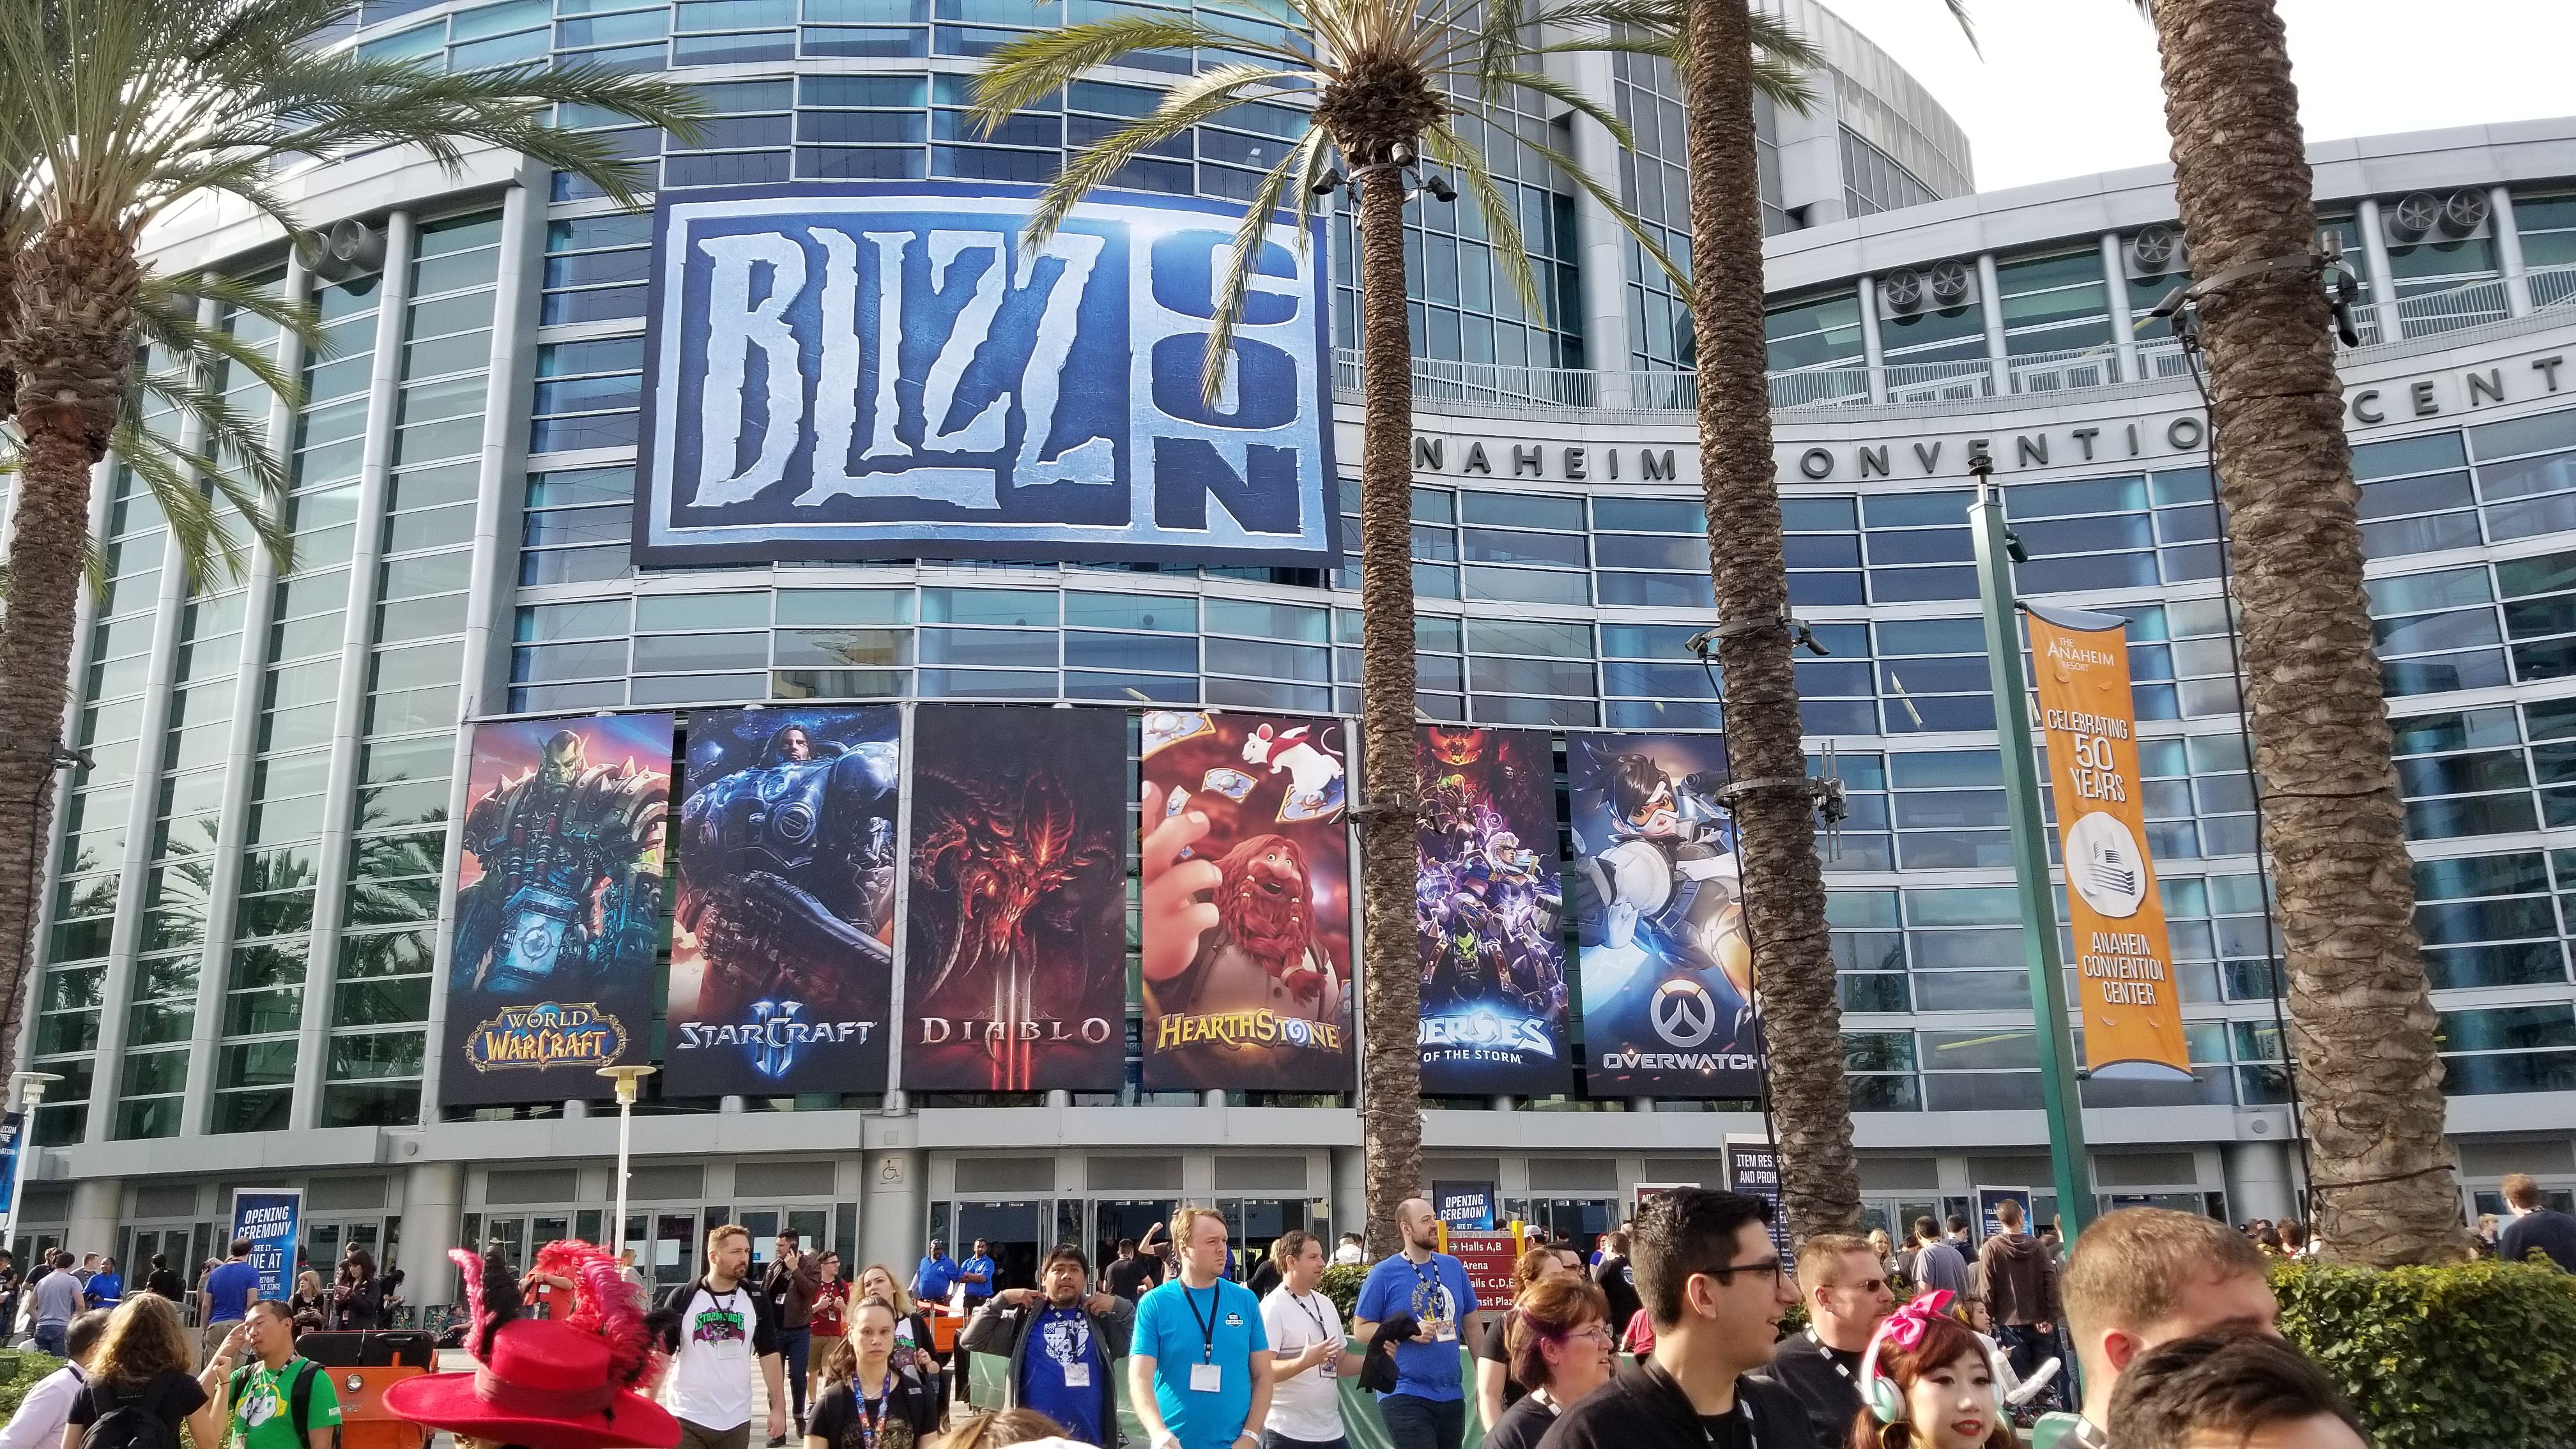 marketing and advertising blizzcon